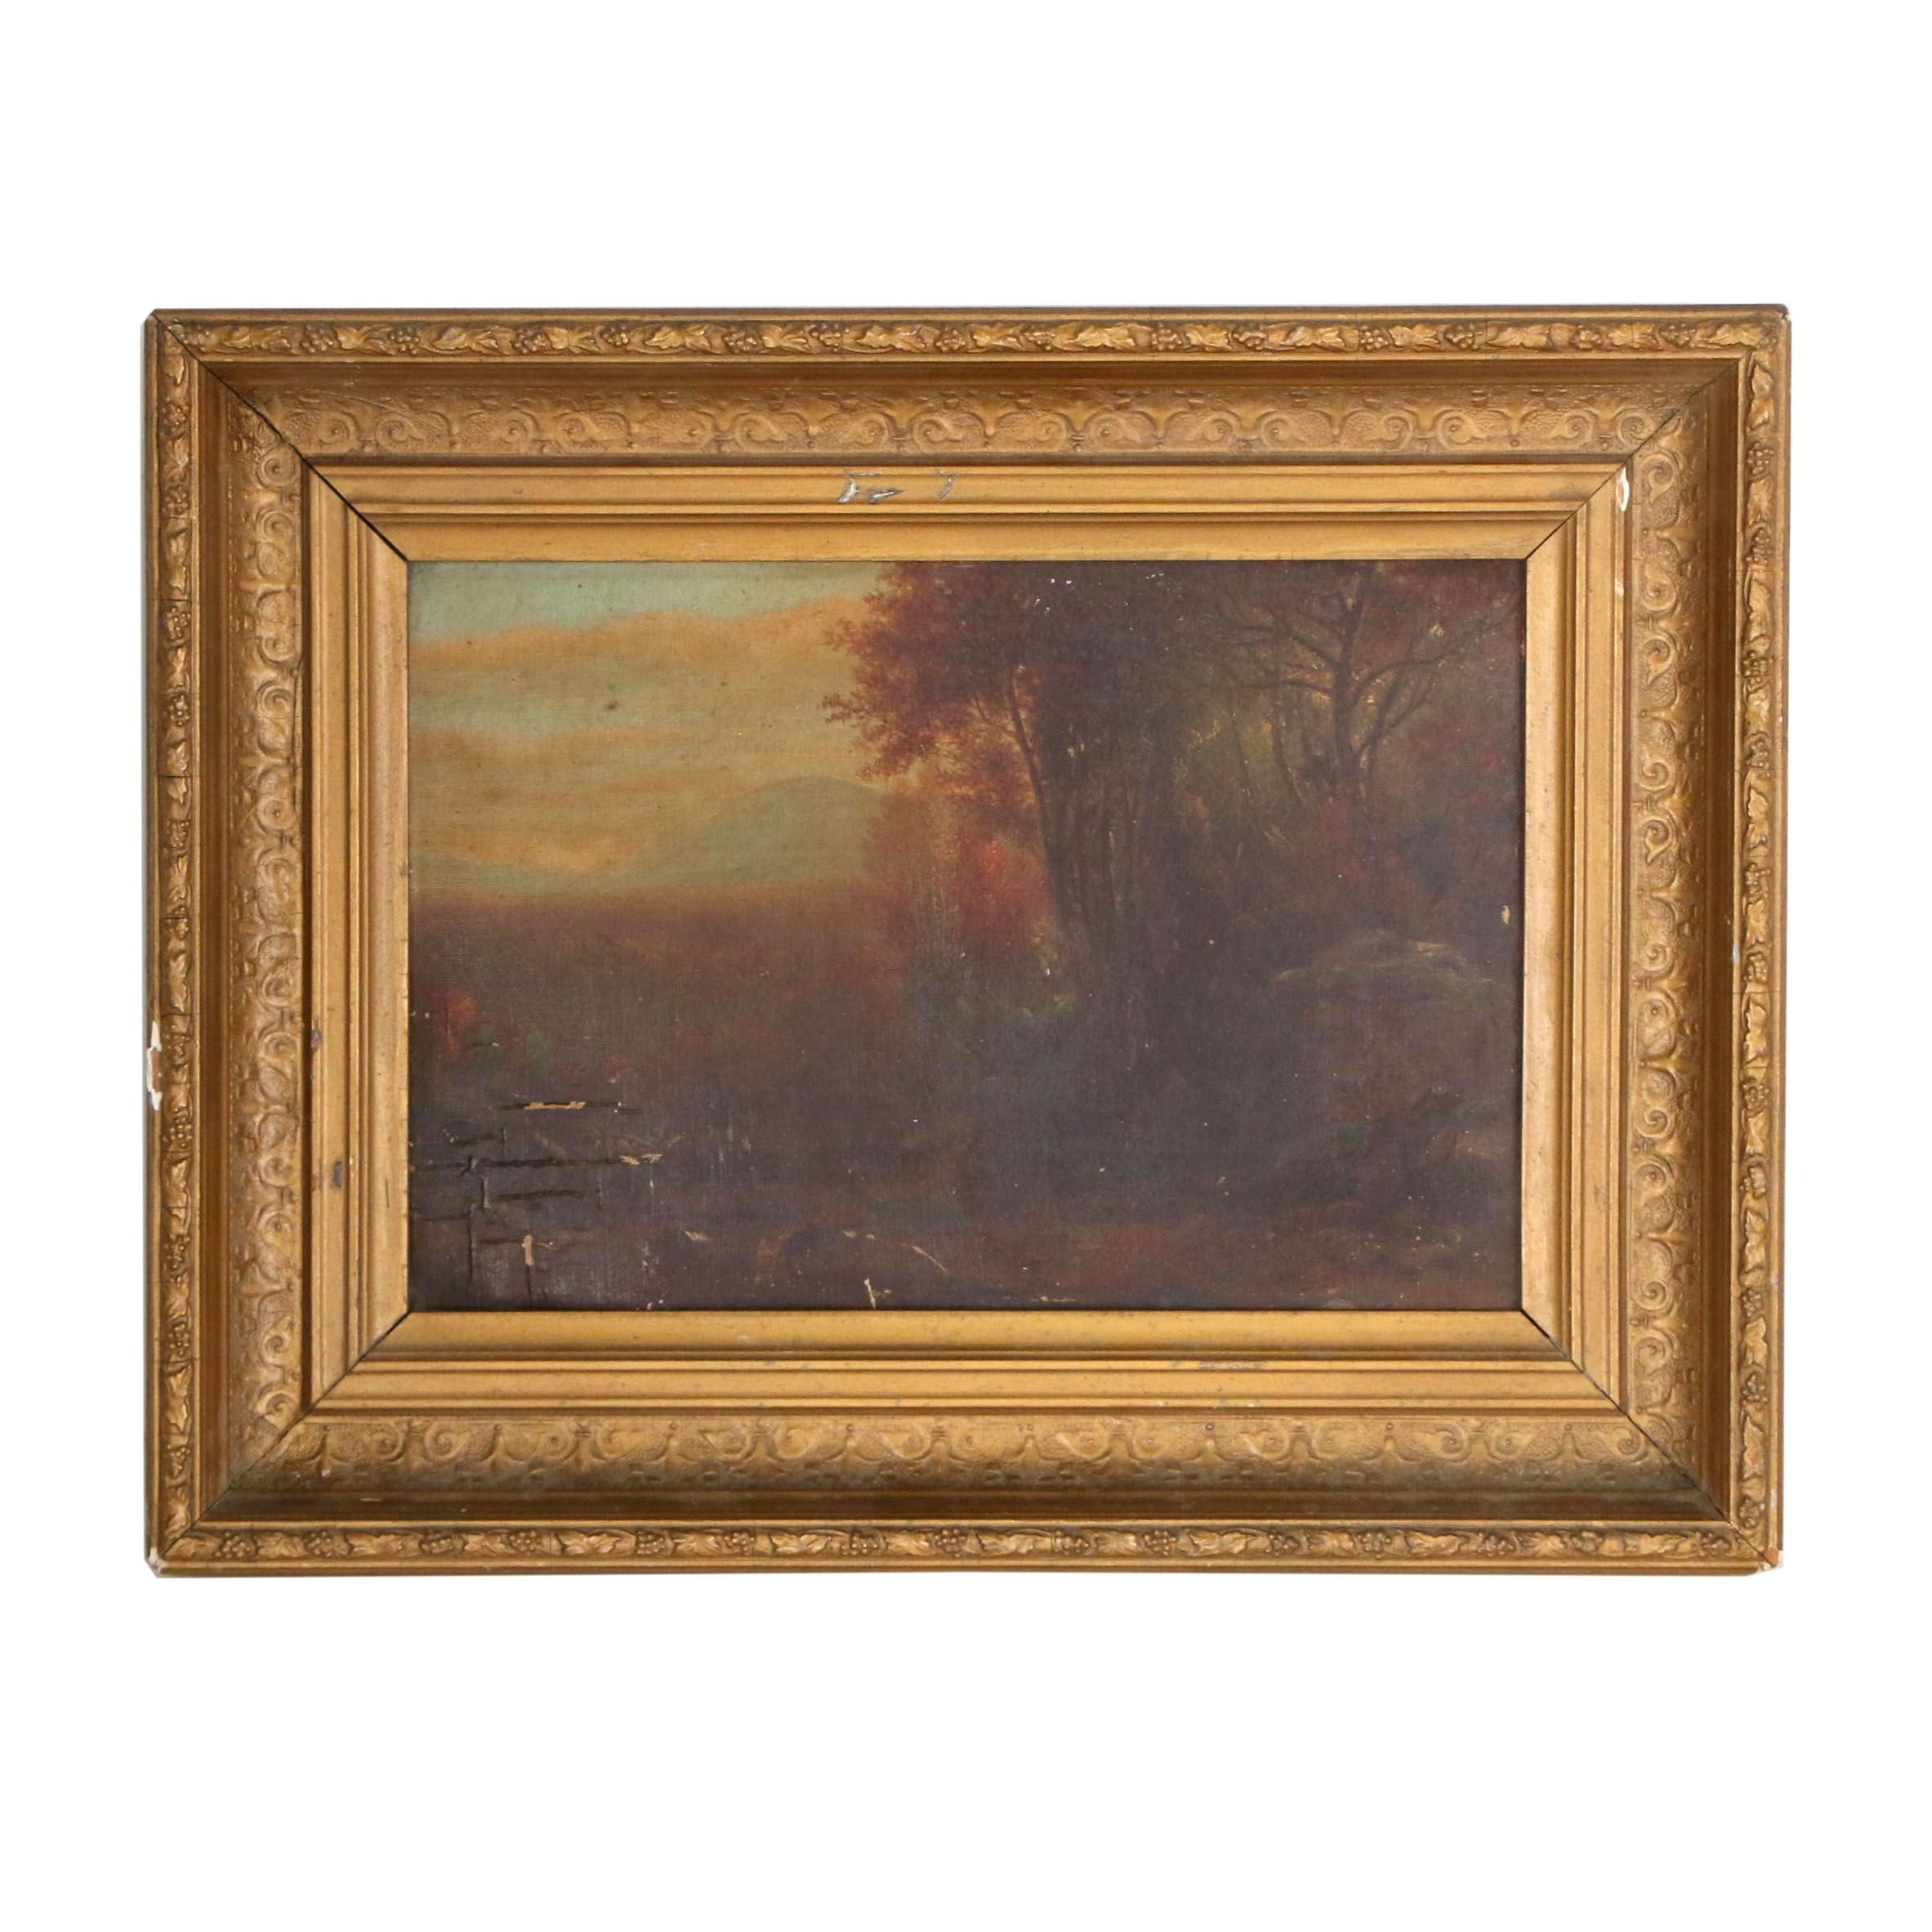 Vintage Scenic Oil Painting